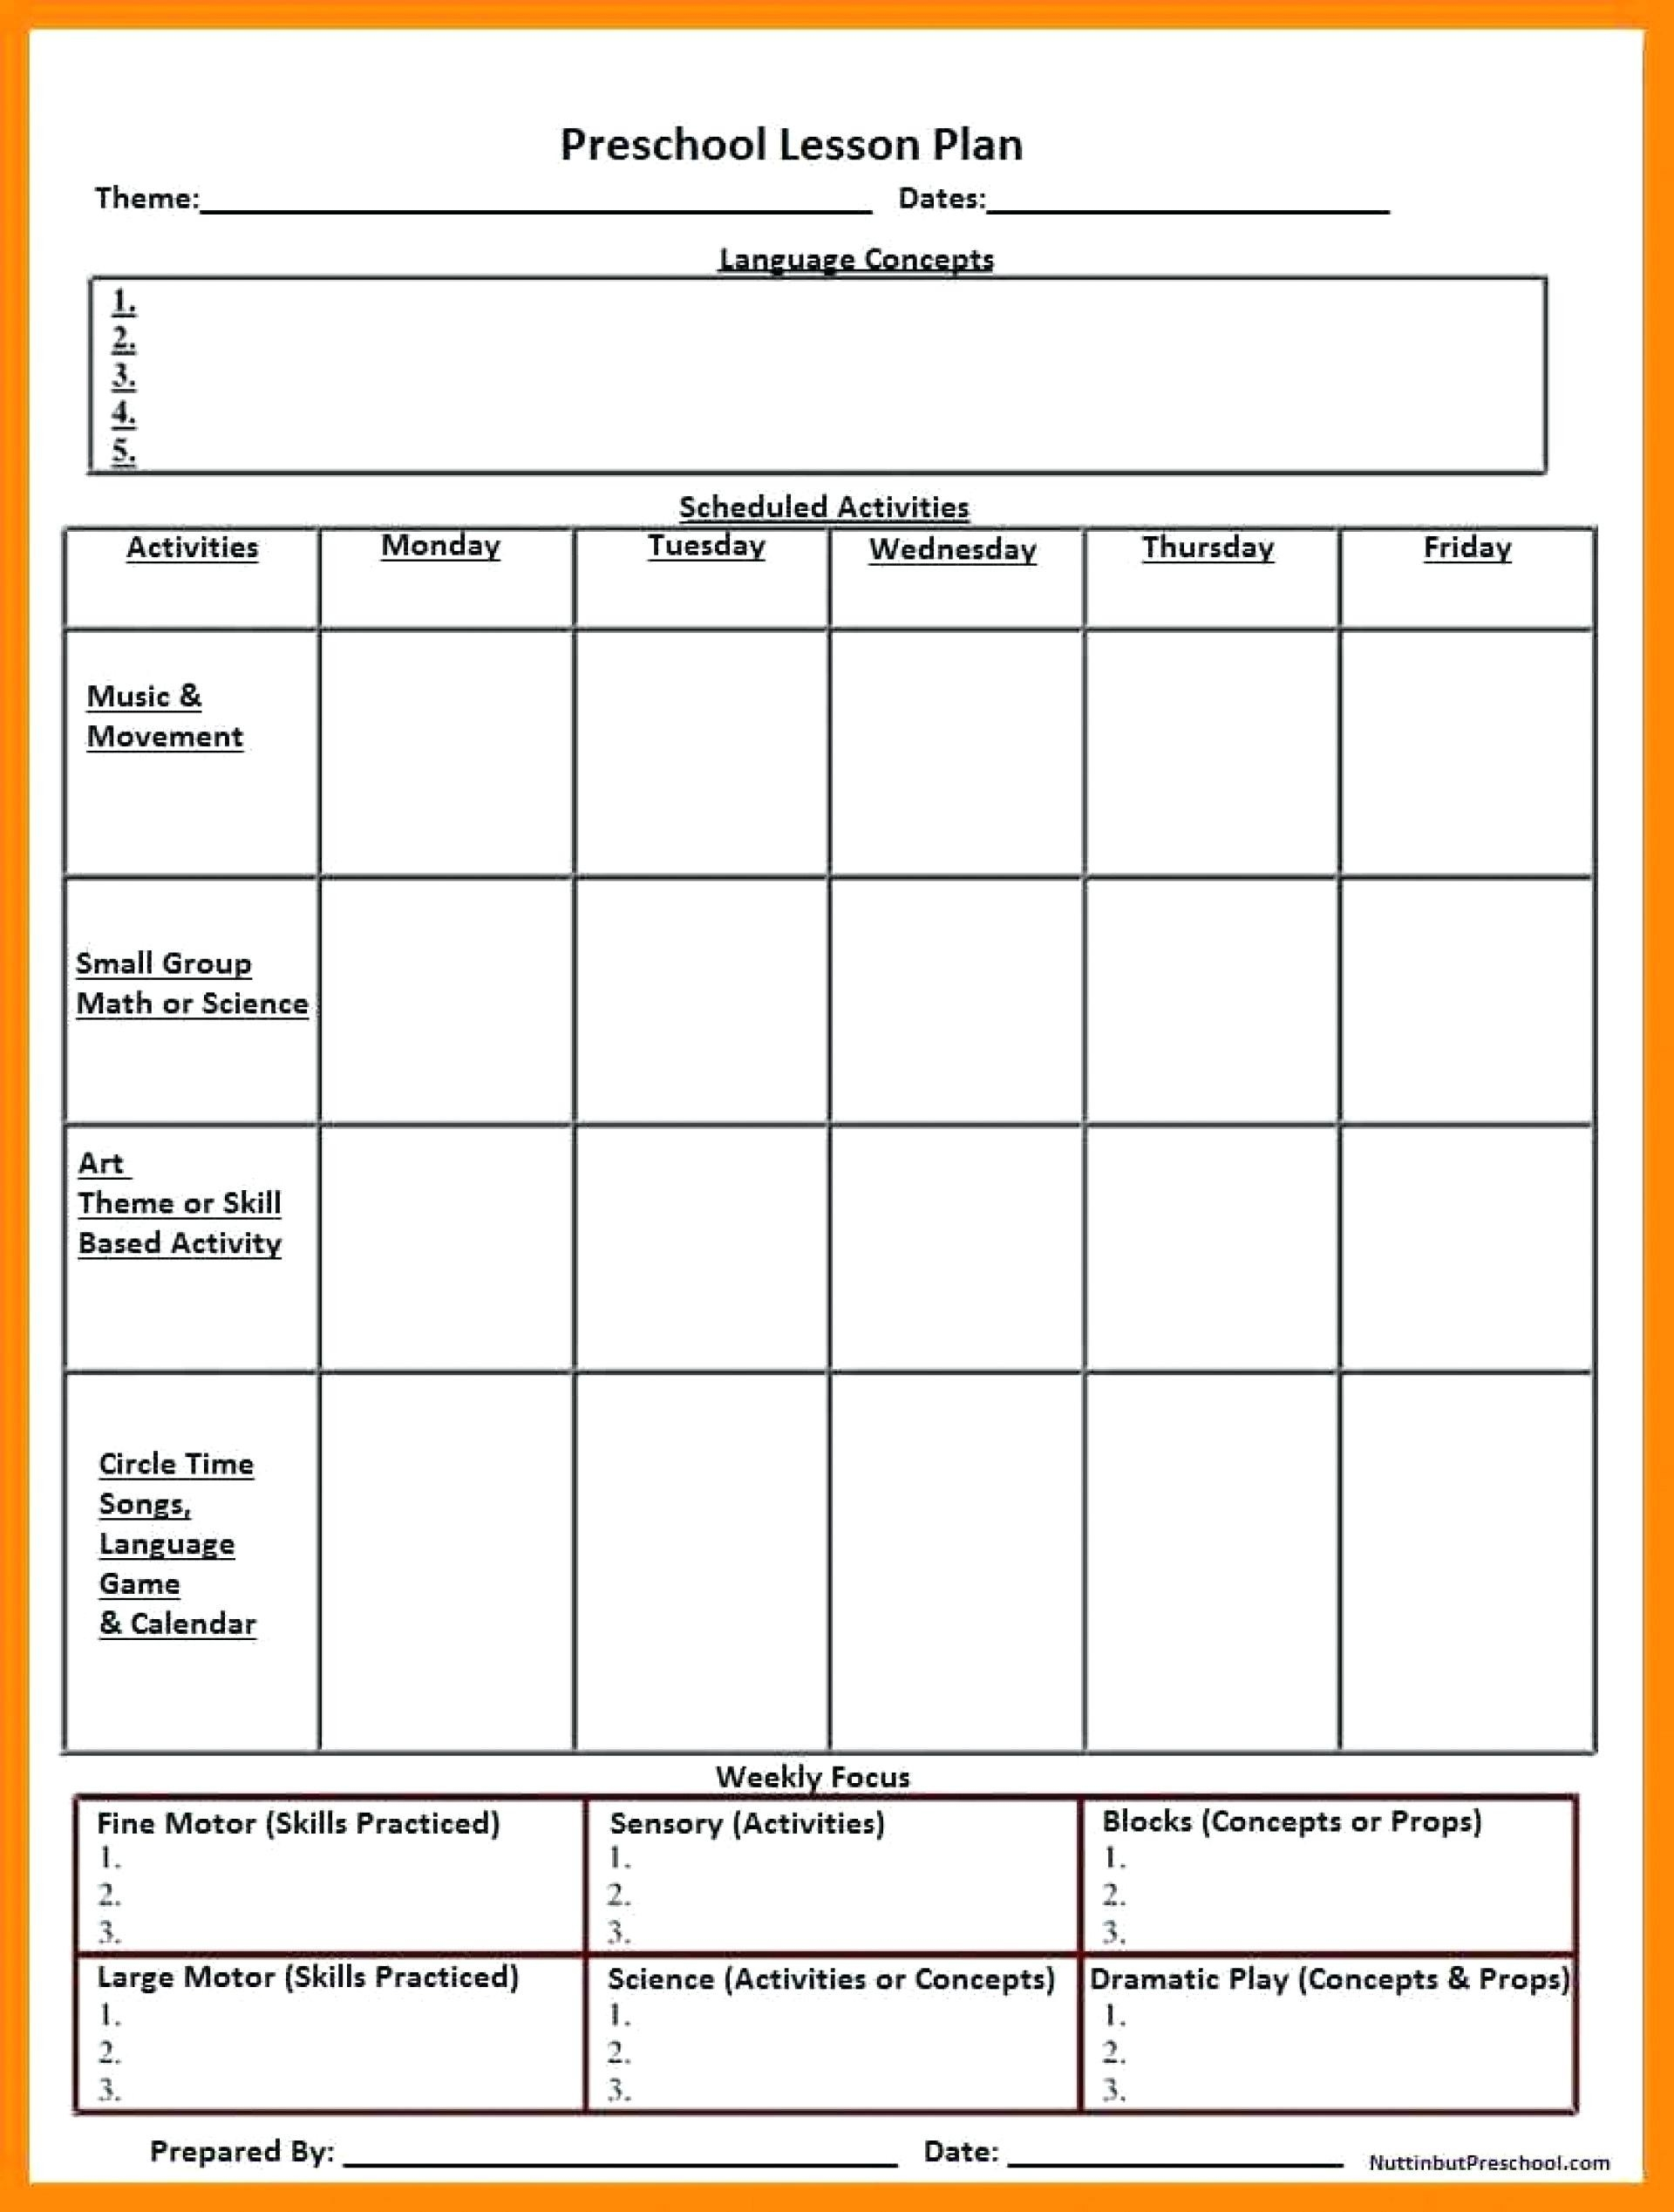 030 Template Ideas Lesson Plans For Preschool Free Printable-Printable Template Childcare Lesson Plan 2020